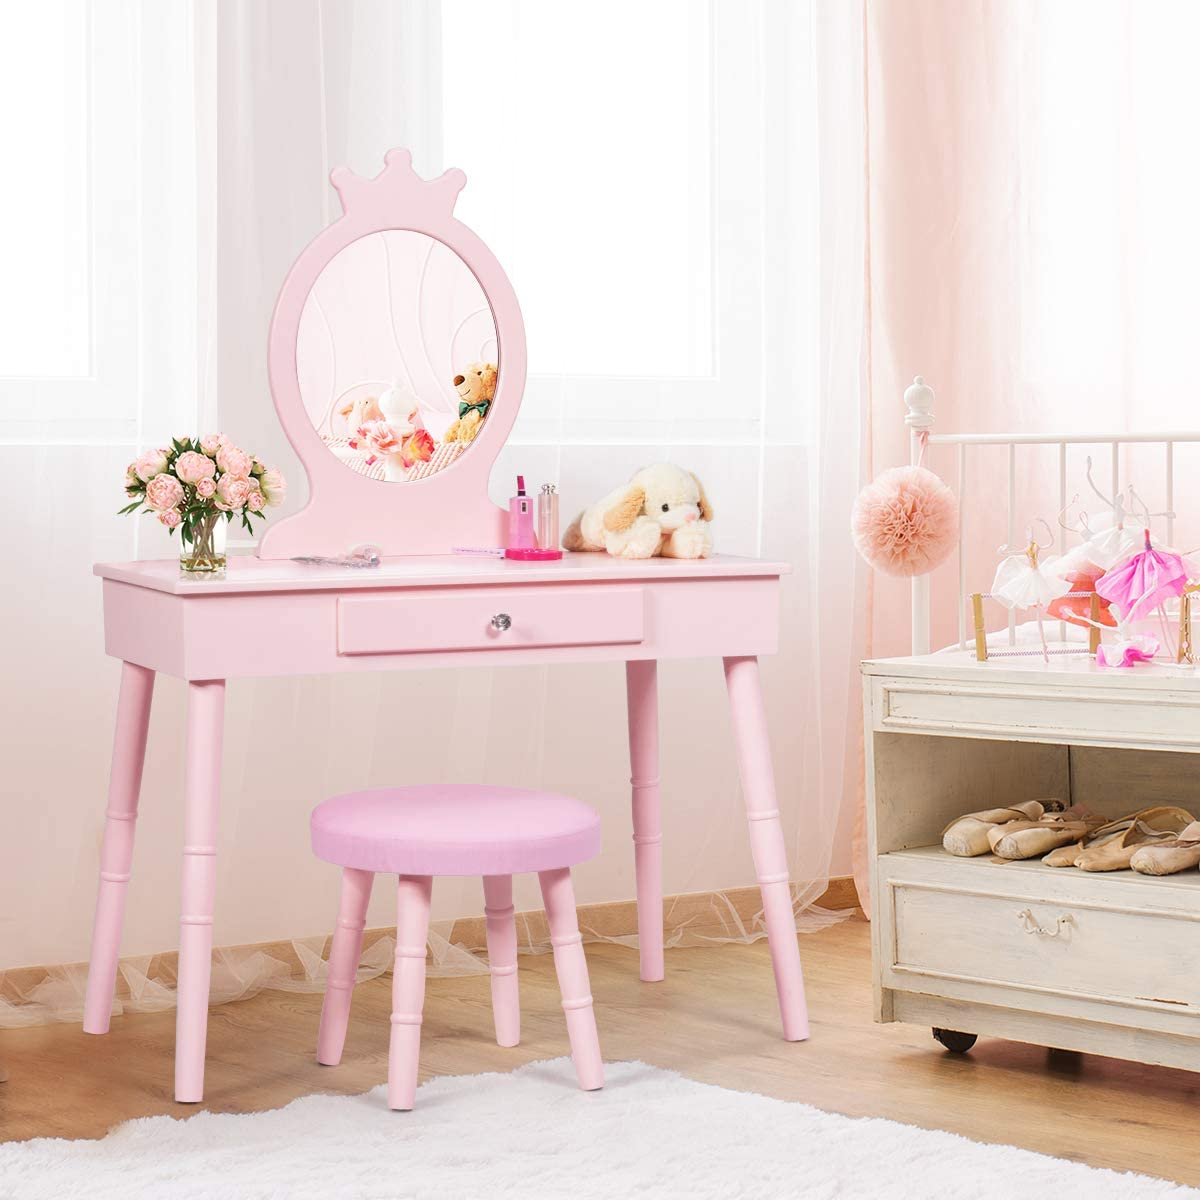 Amazon Com Costzon Kids Vanity Set Wooden Princess Makeup Table With Cushioned Stool Large Drawer Solid Wooden Legs And Crown Mirror Pretend Beauty Make Up Dressing Play Set For Girls Best Gift Pink